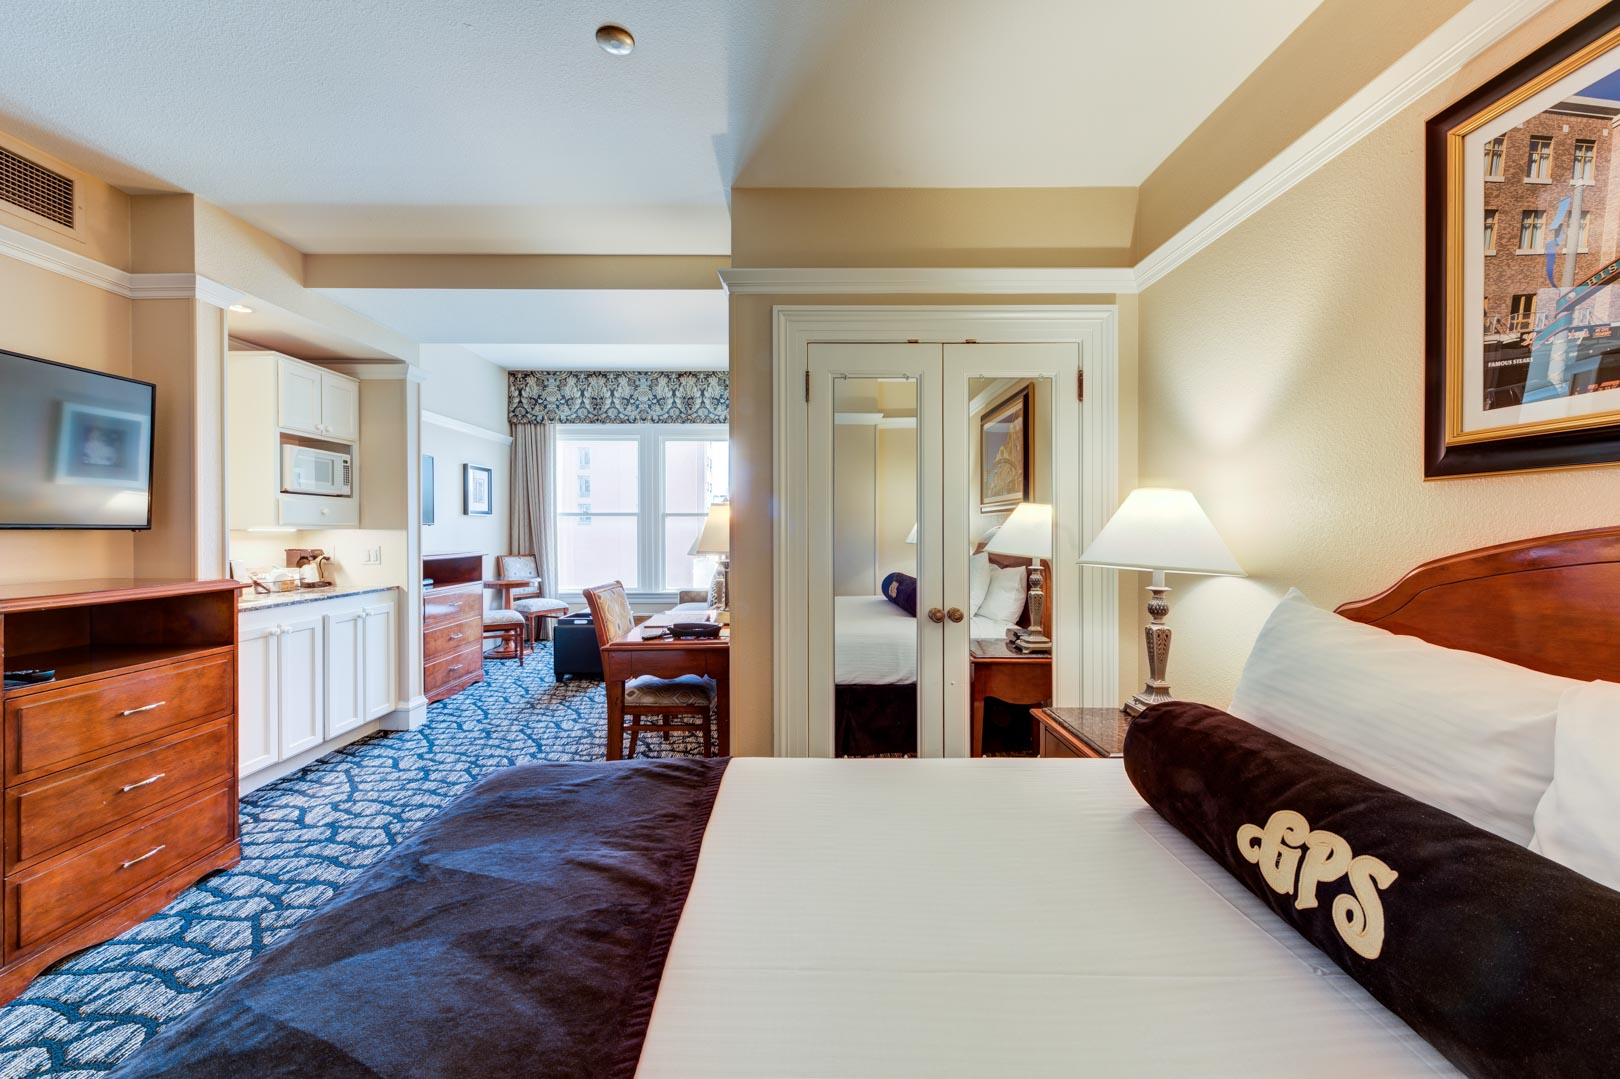 An expansive master bedroom at VRI's Gaslamp Plaza Suites in San Diego, California.